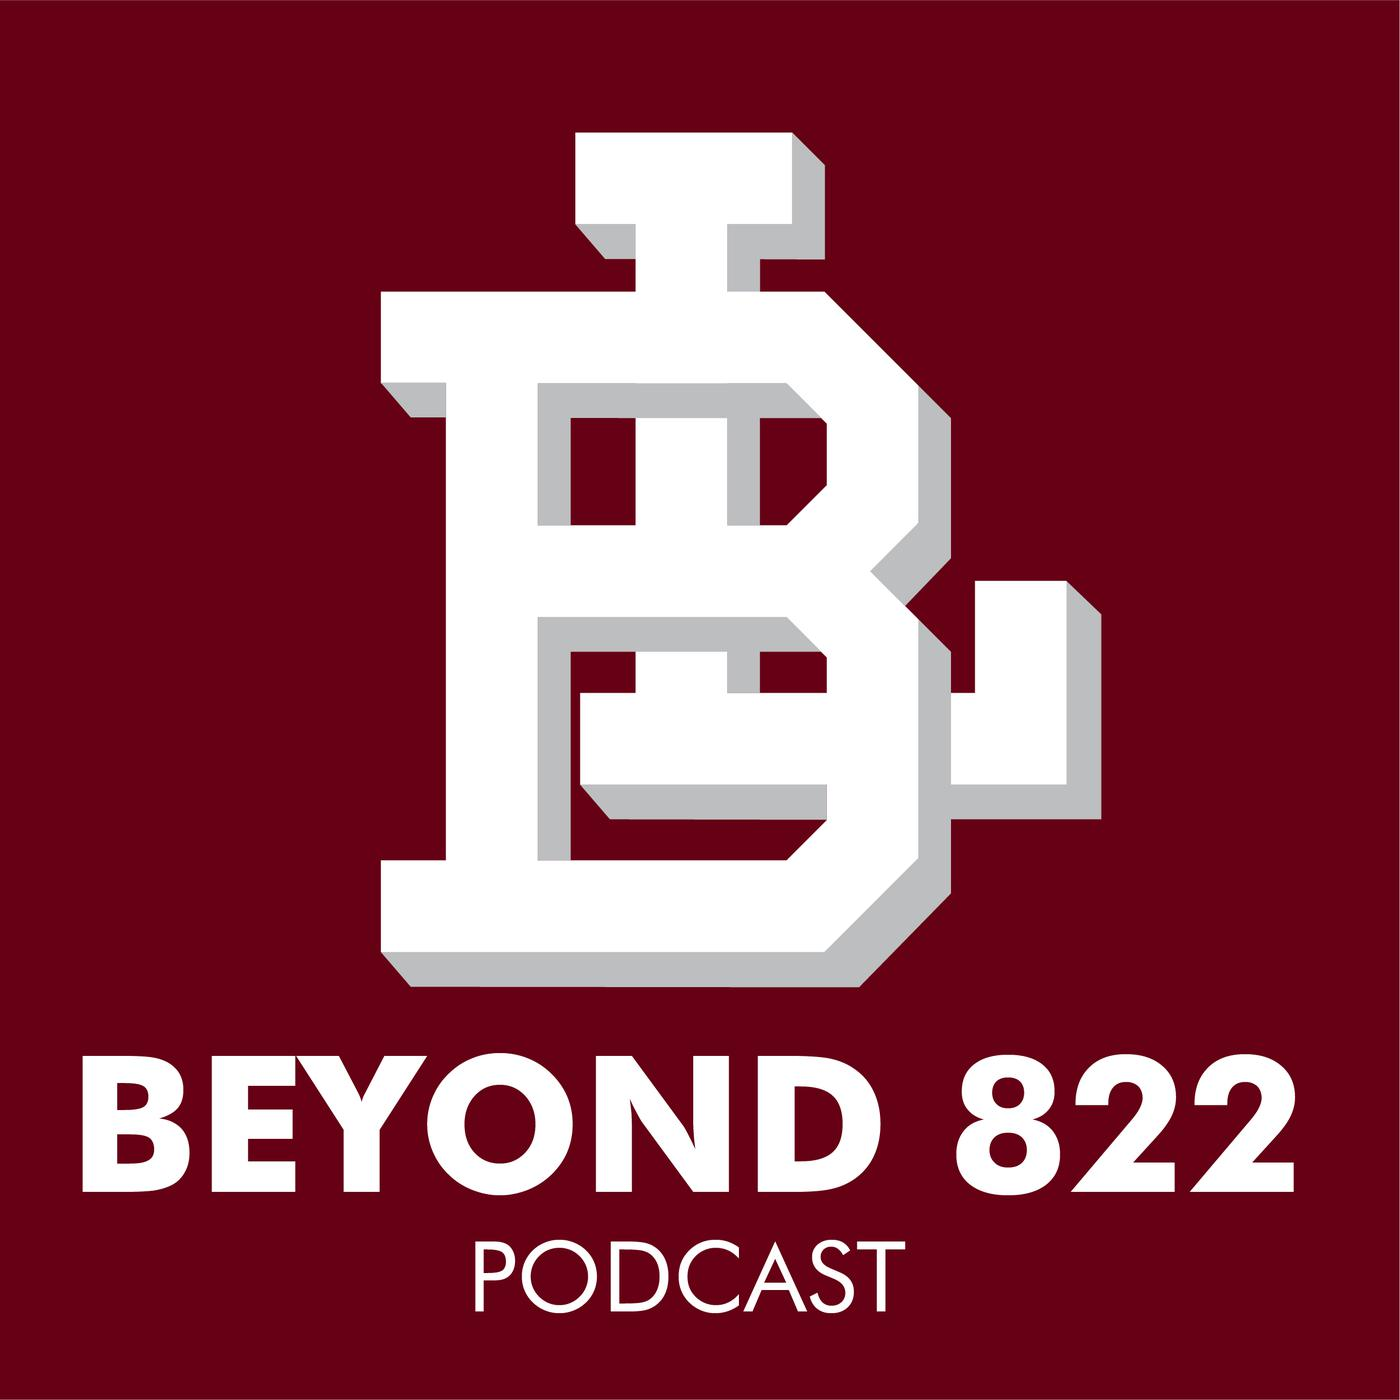 The Beyond 822 Podcast